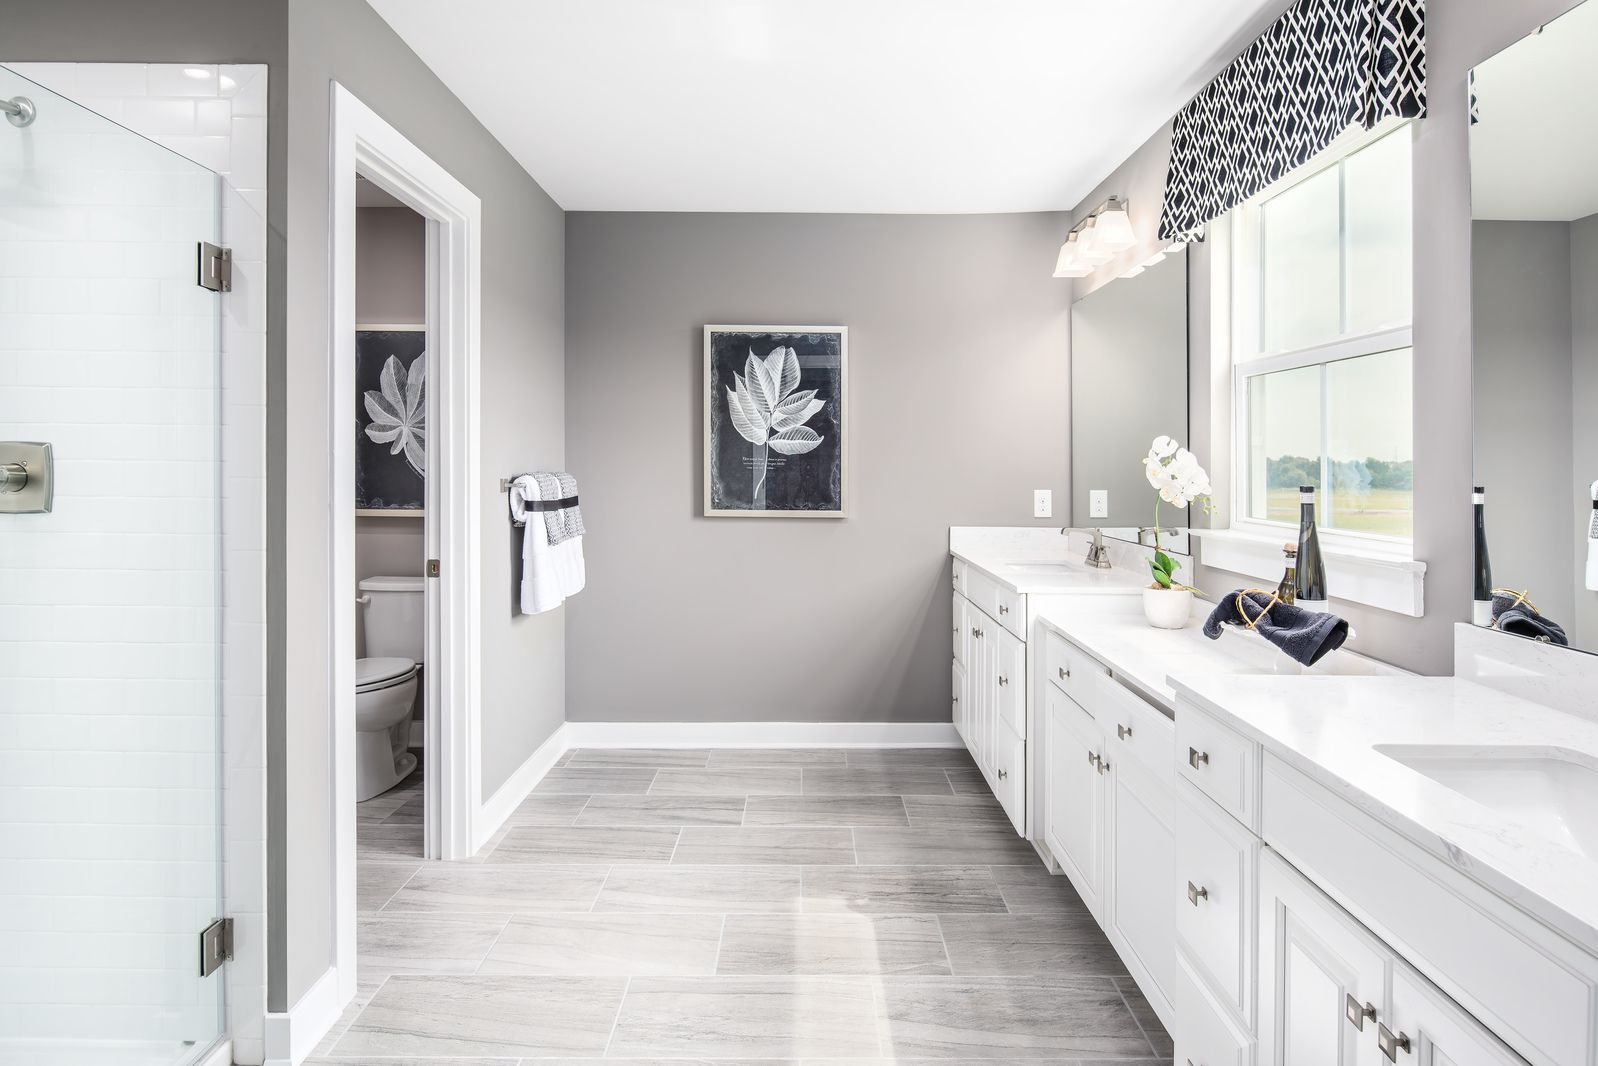 Bathroom featured in the Versailles By Ryan Homes in Washington, MD